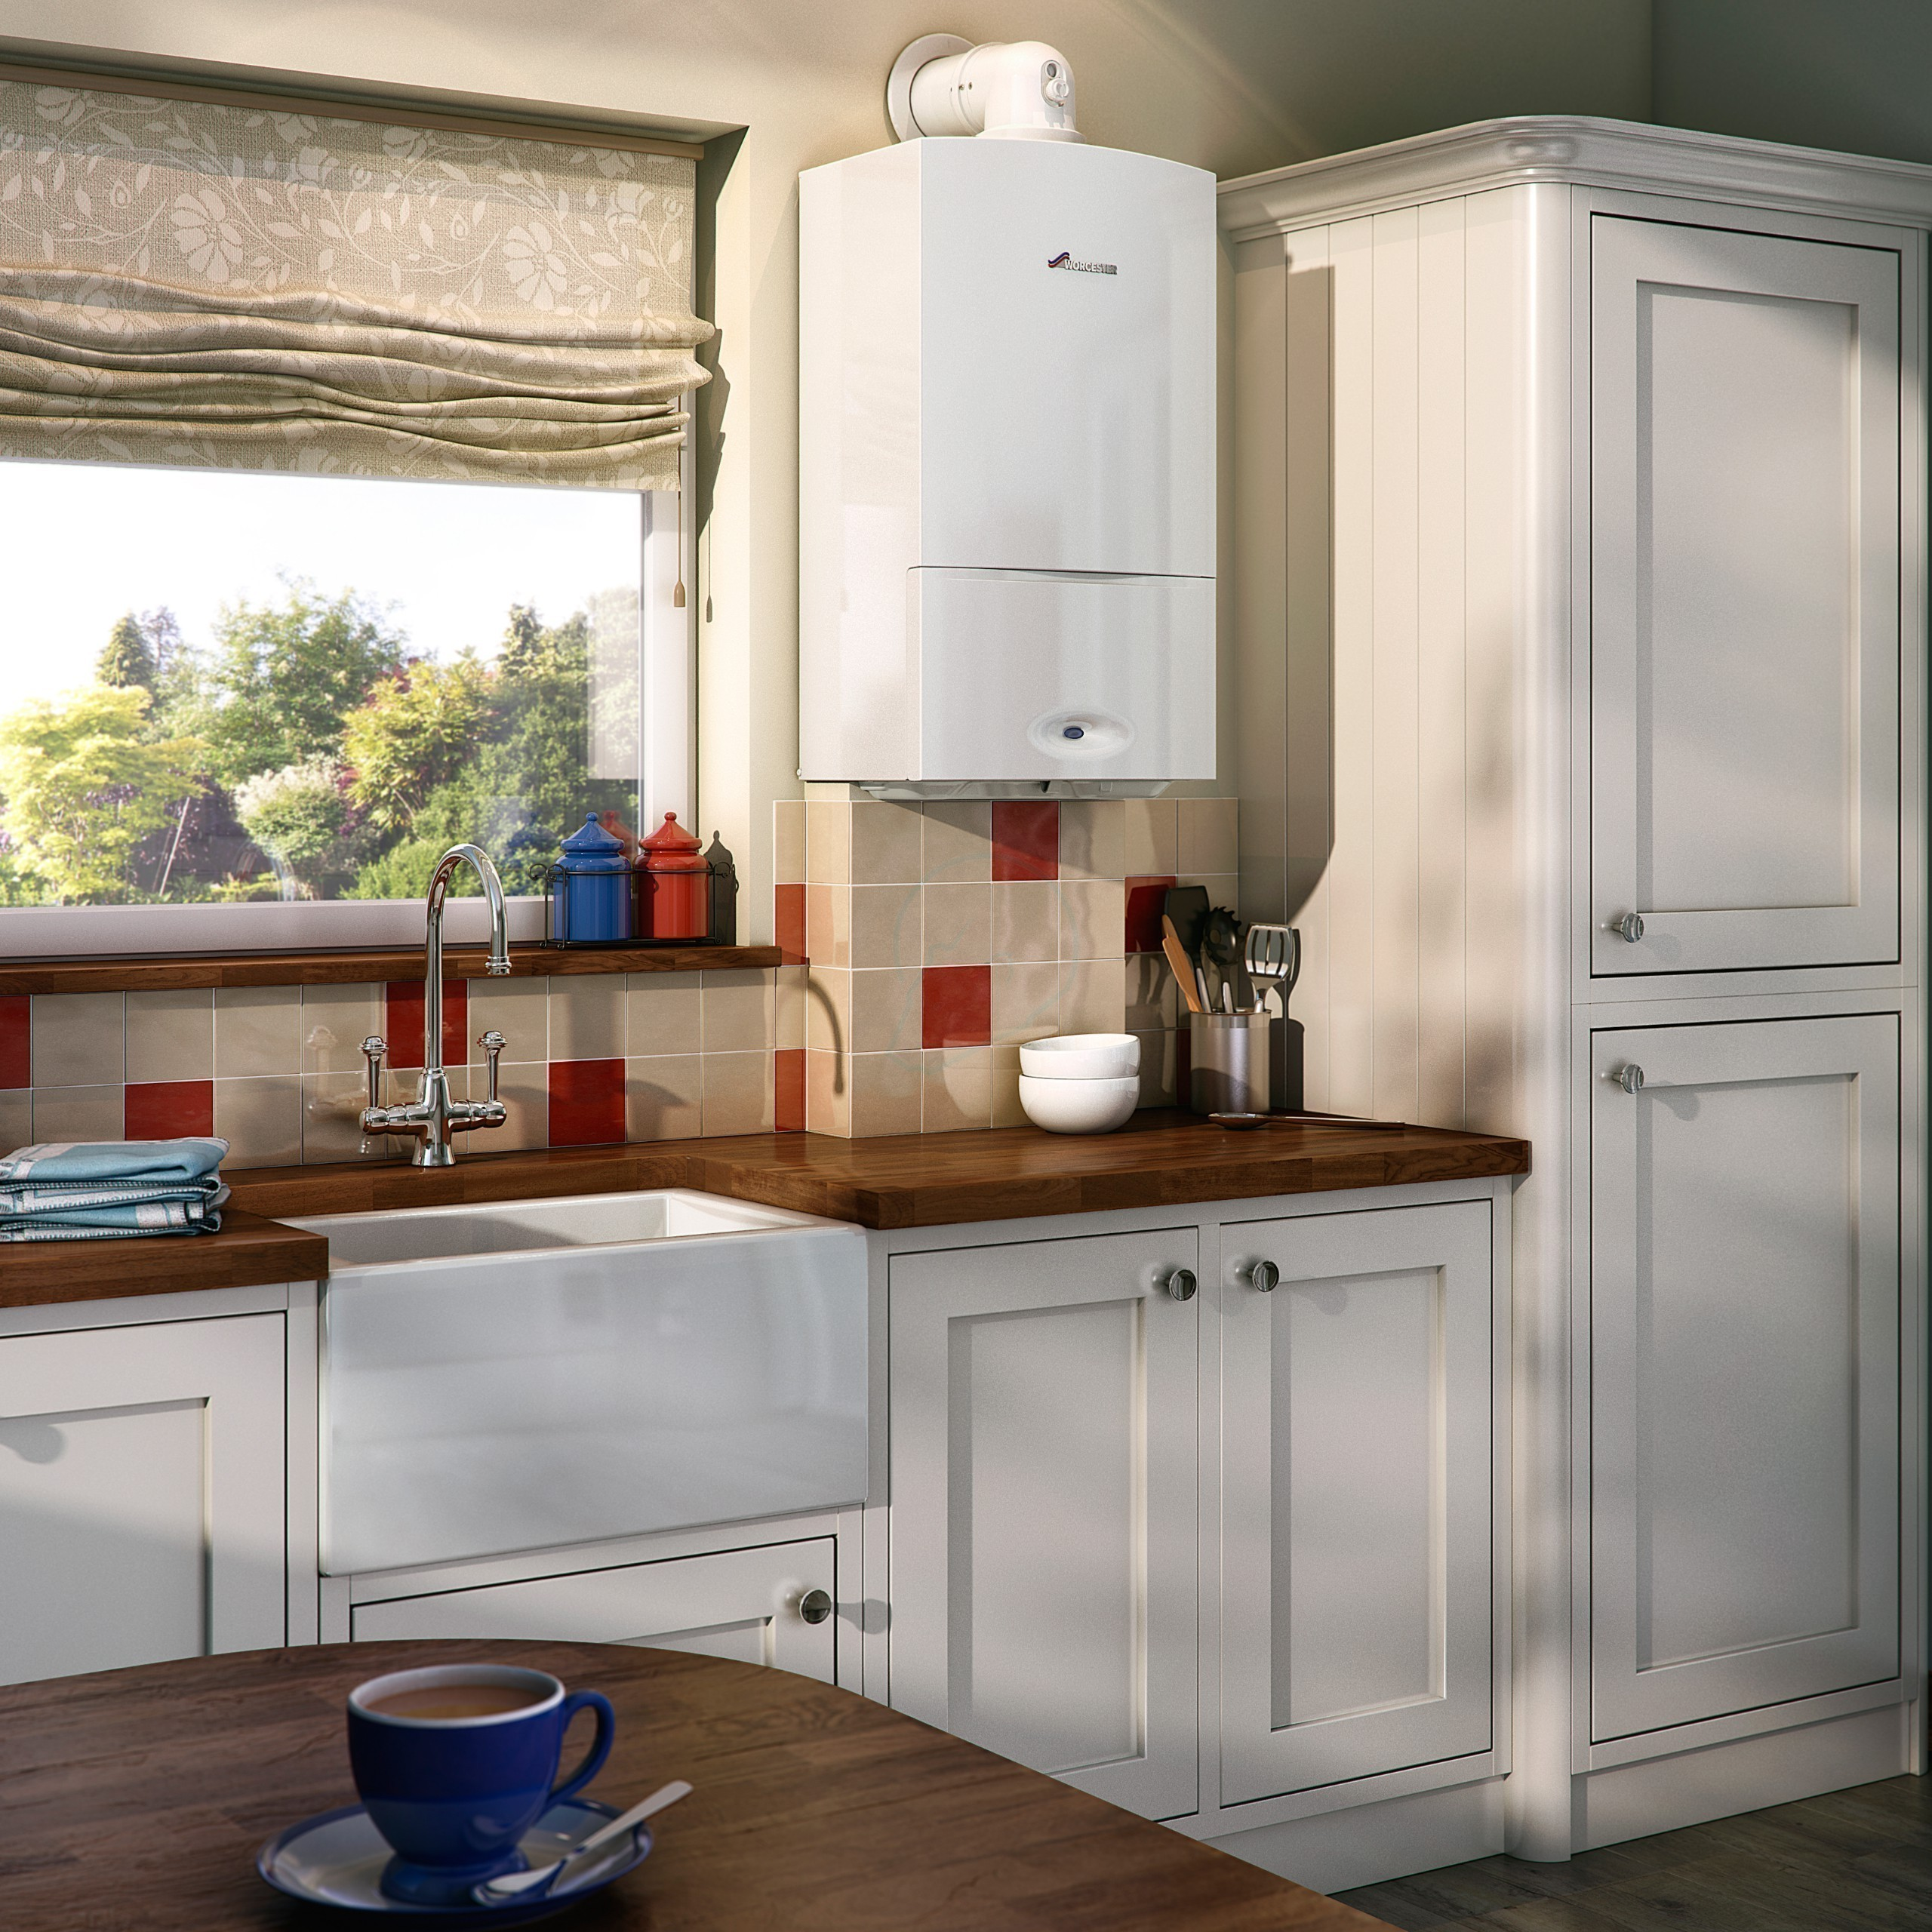 Kitchen Cabinet Pricing Guide: Combi Boiler Prices And Cost Guide